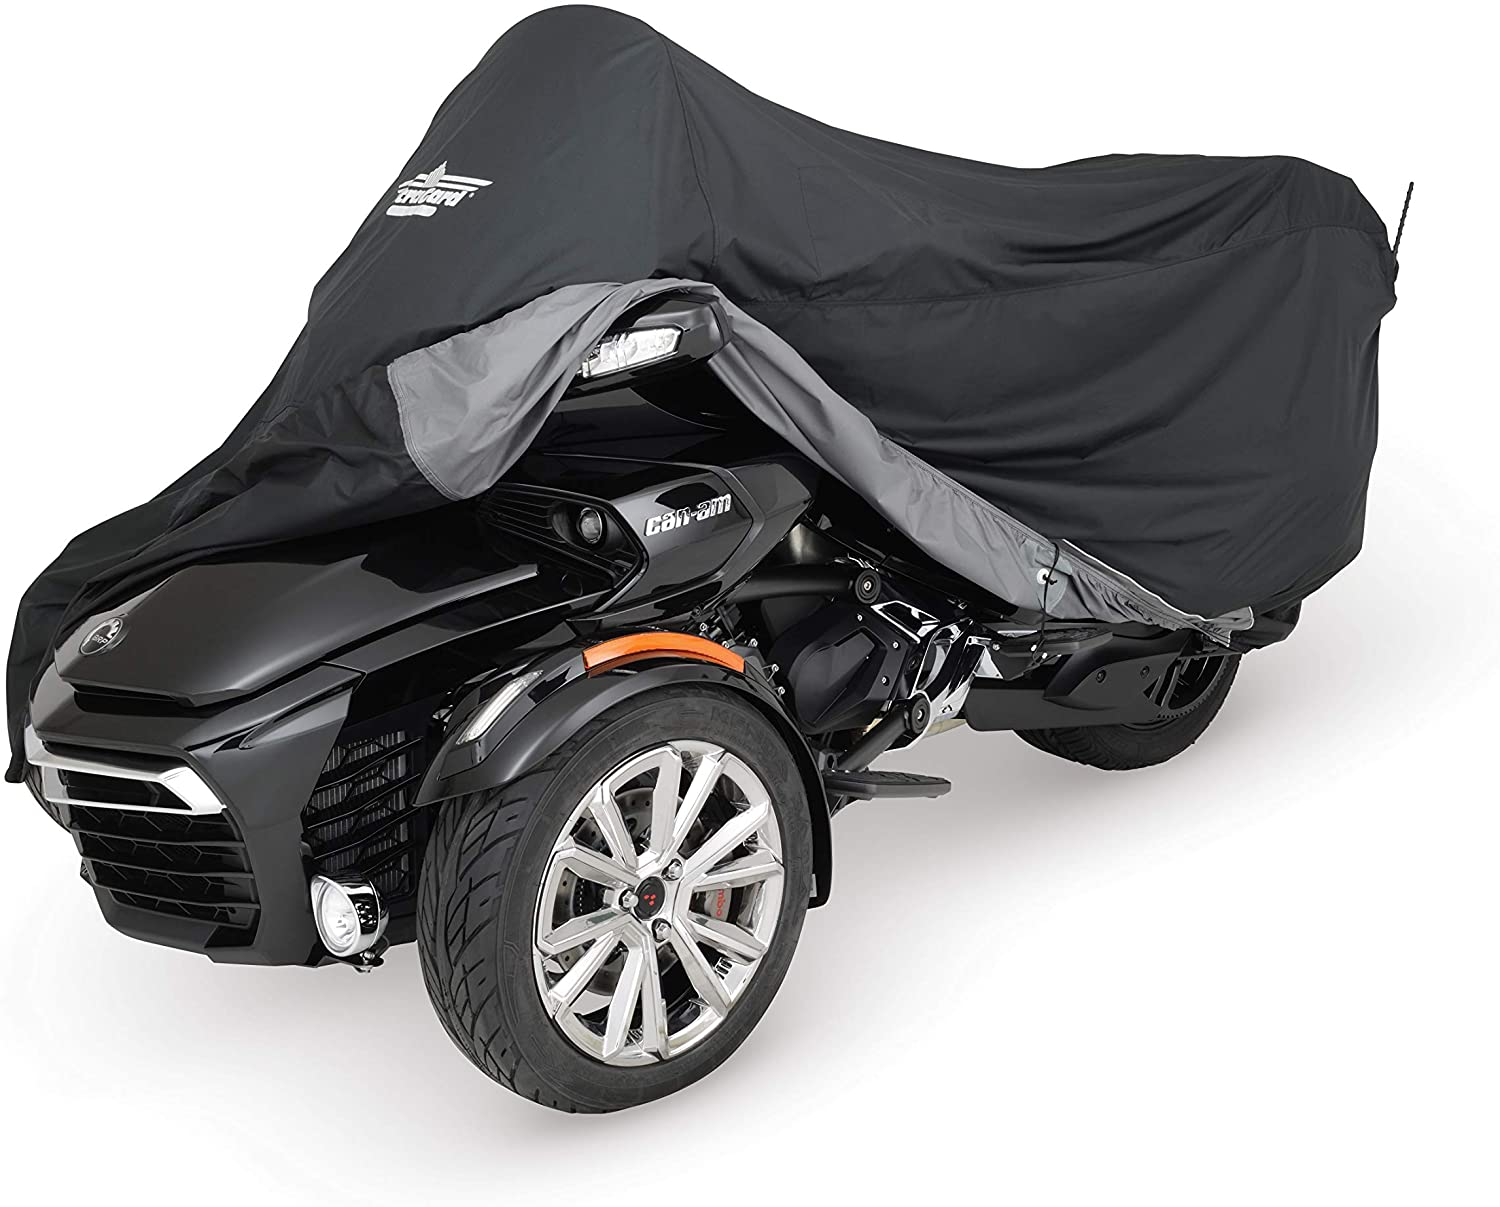 UltraGard 4-477BC Can-Am Spyder F3T/LTD Cover,0 Pack